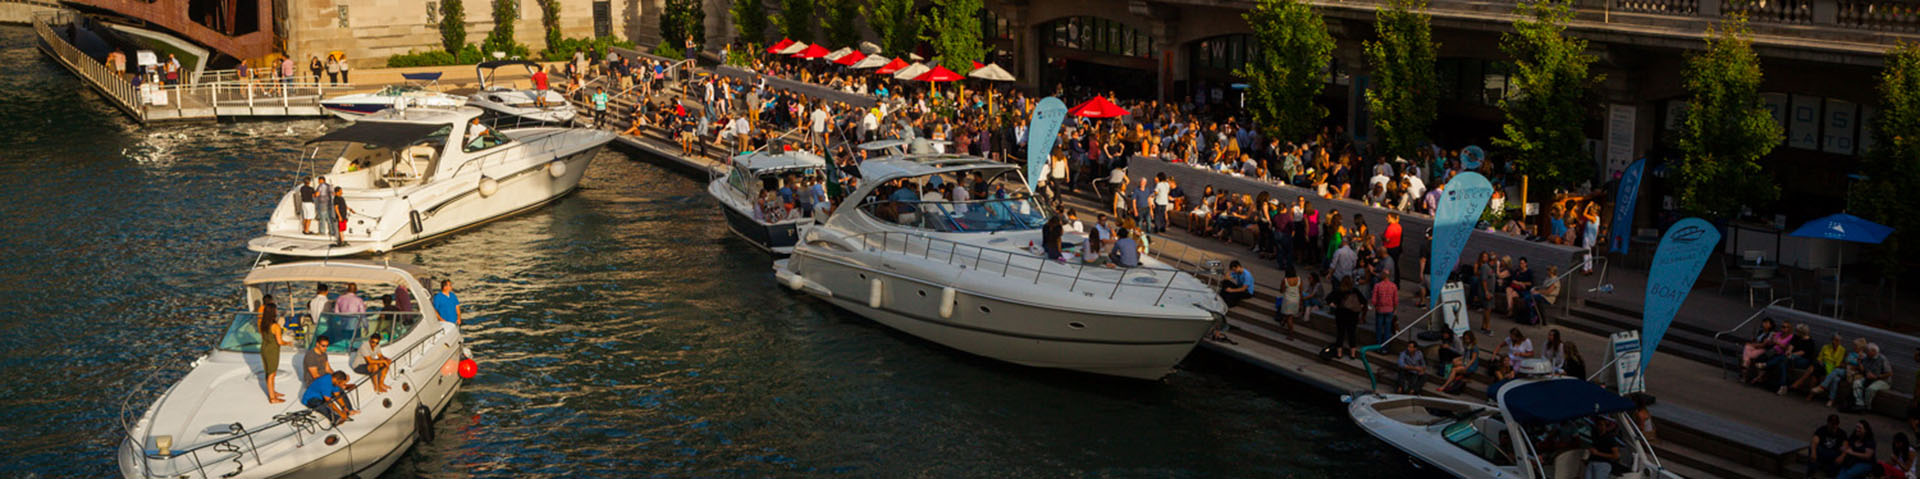 Dine on the Riverwalk